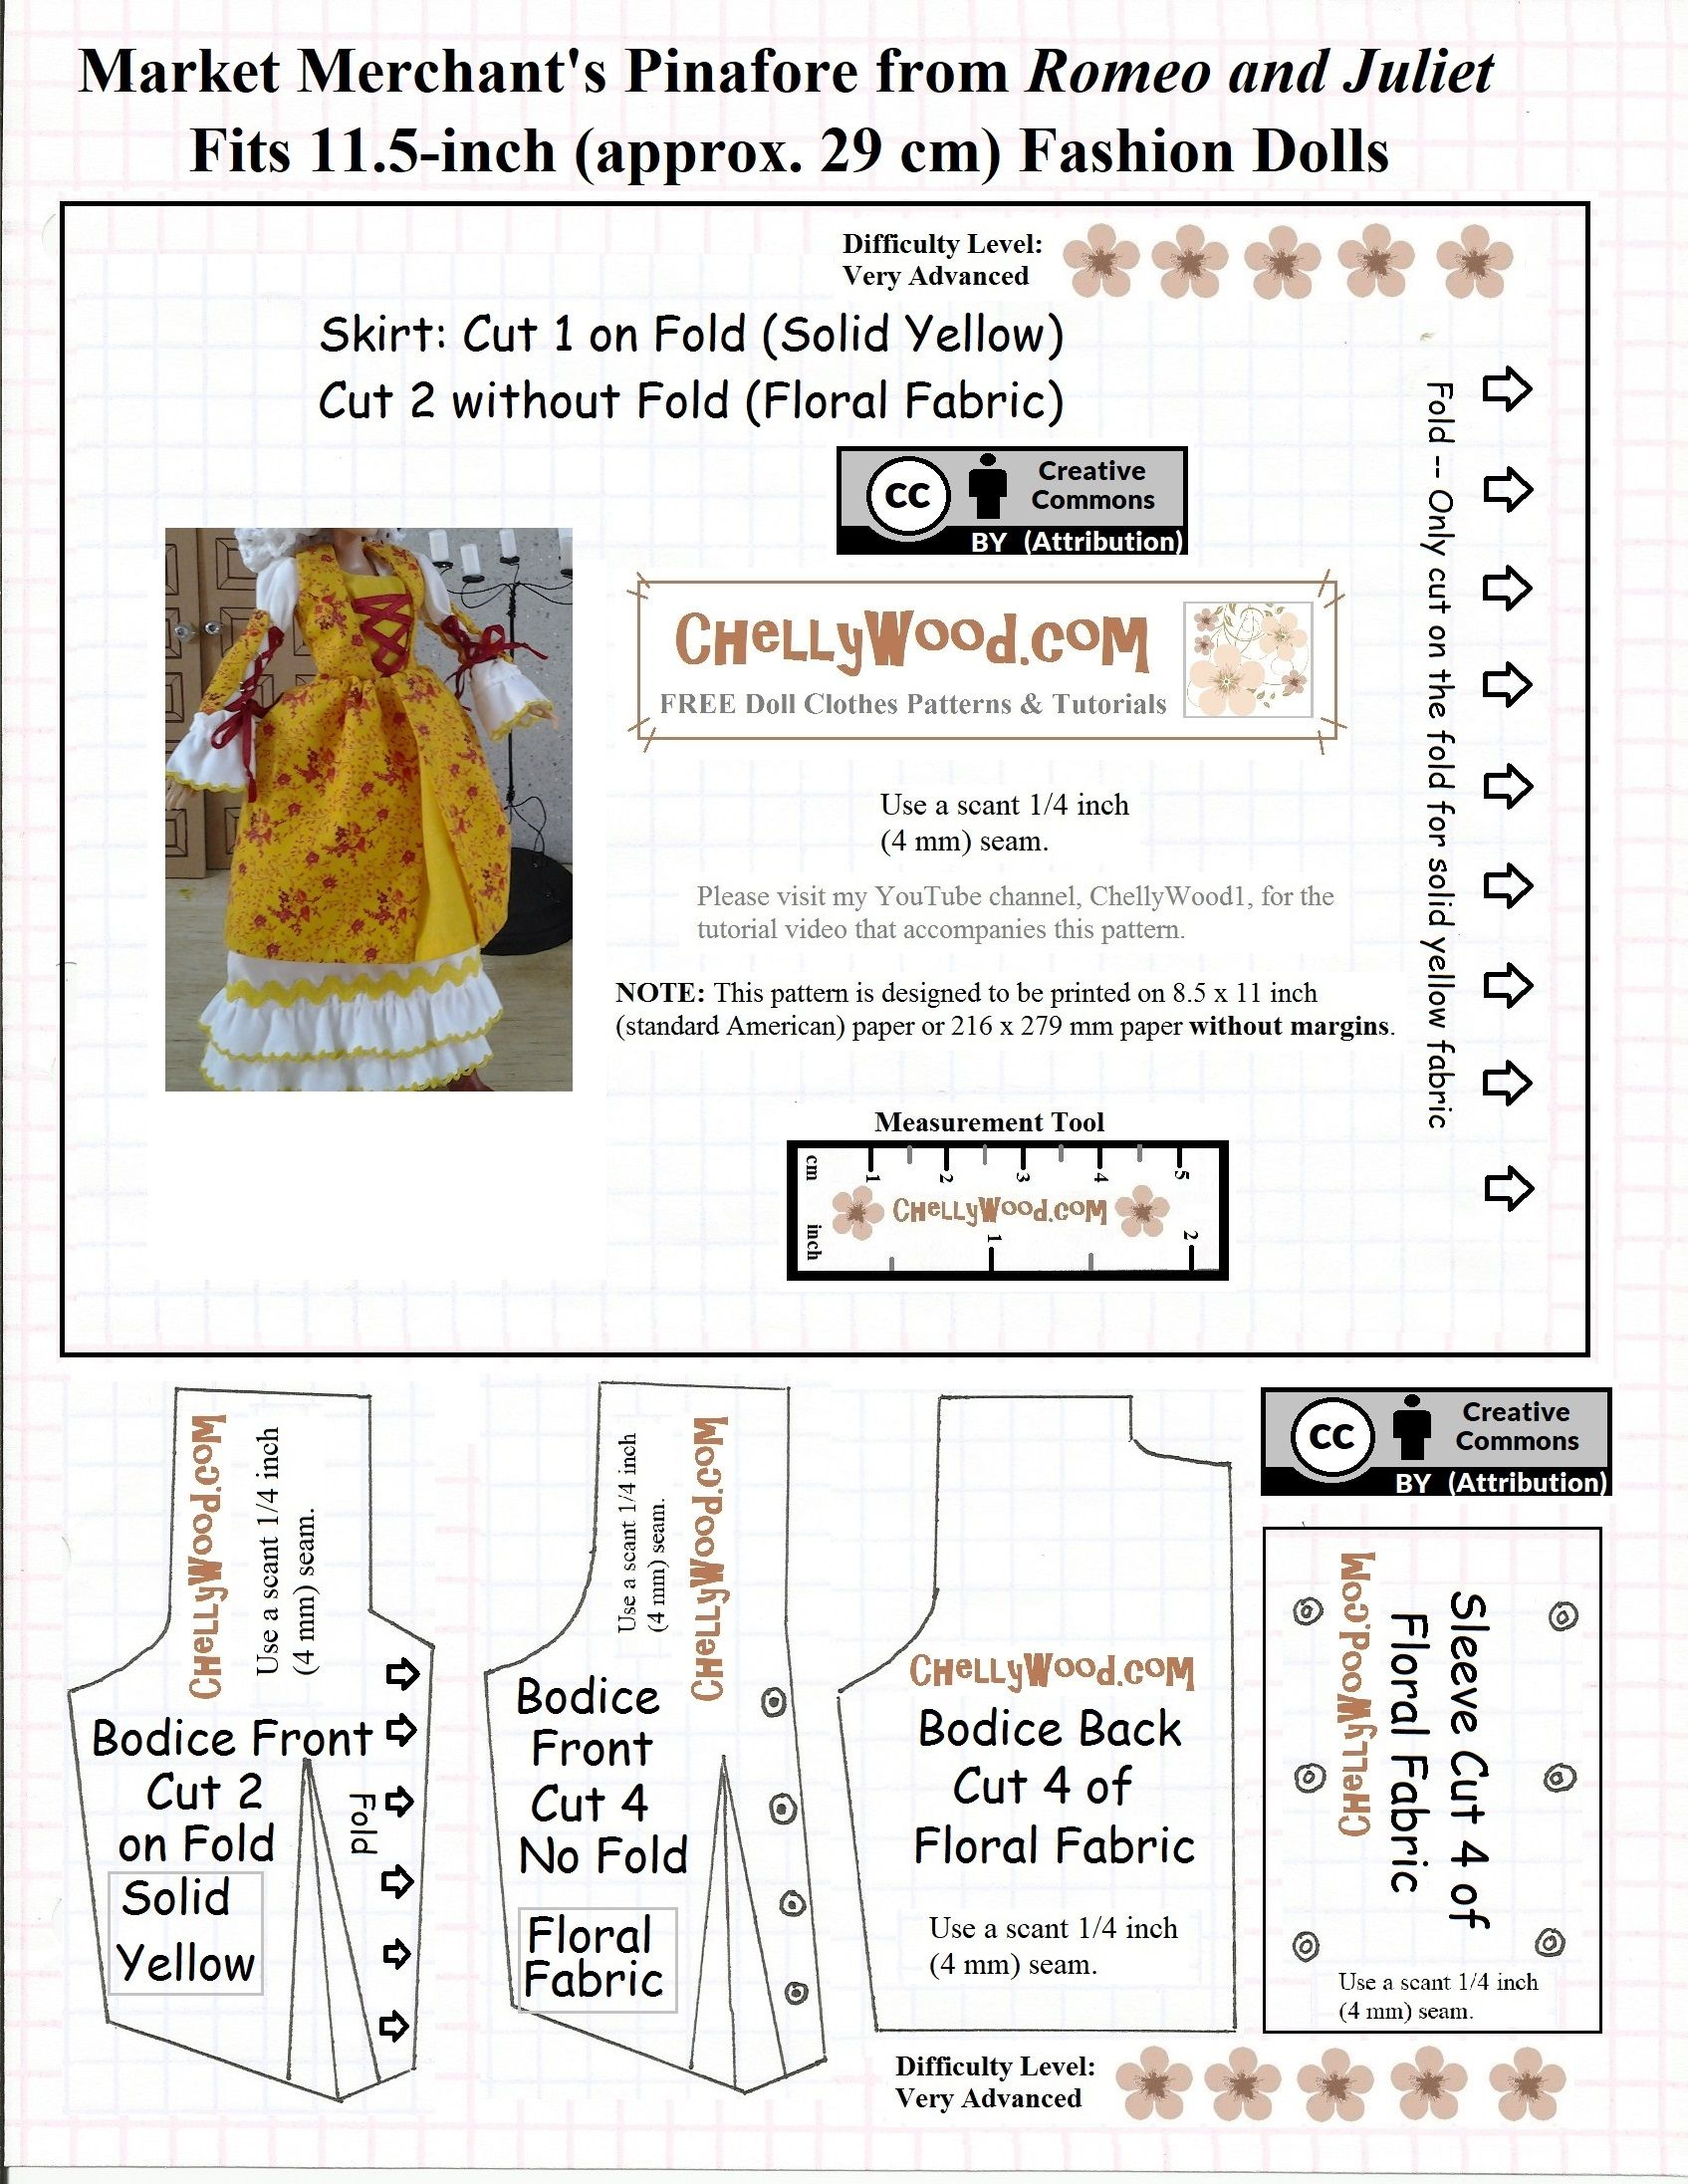 Visit chellywood for free printable sewing patterns for visit chellywood for free printable sewing patterns for barbie and other fashion dolls jeuxipadfo Gallery